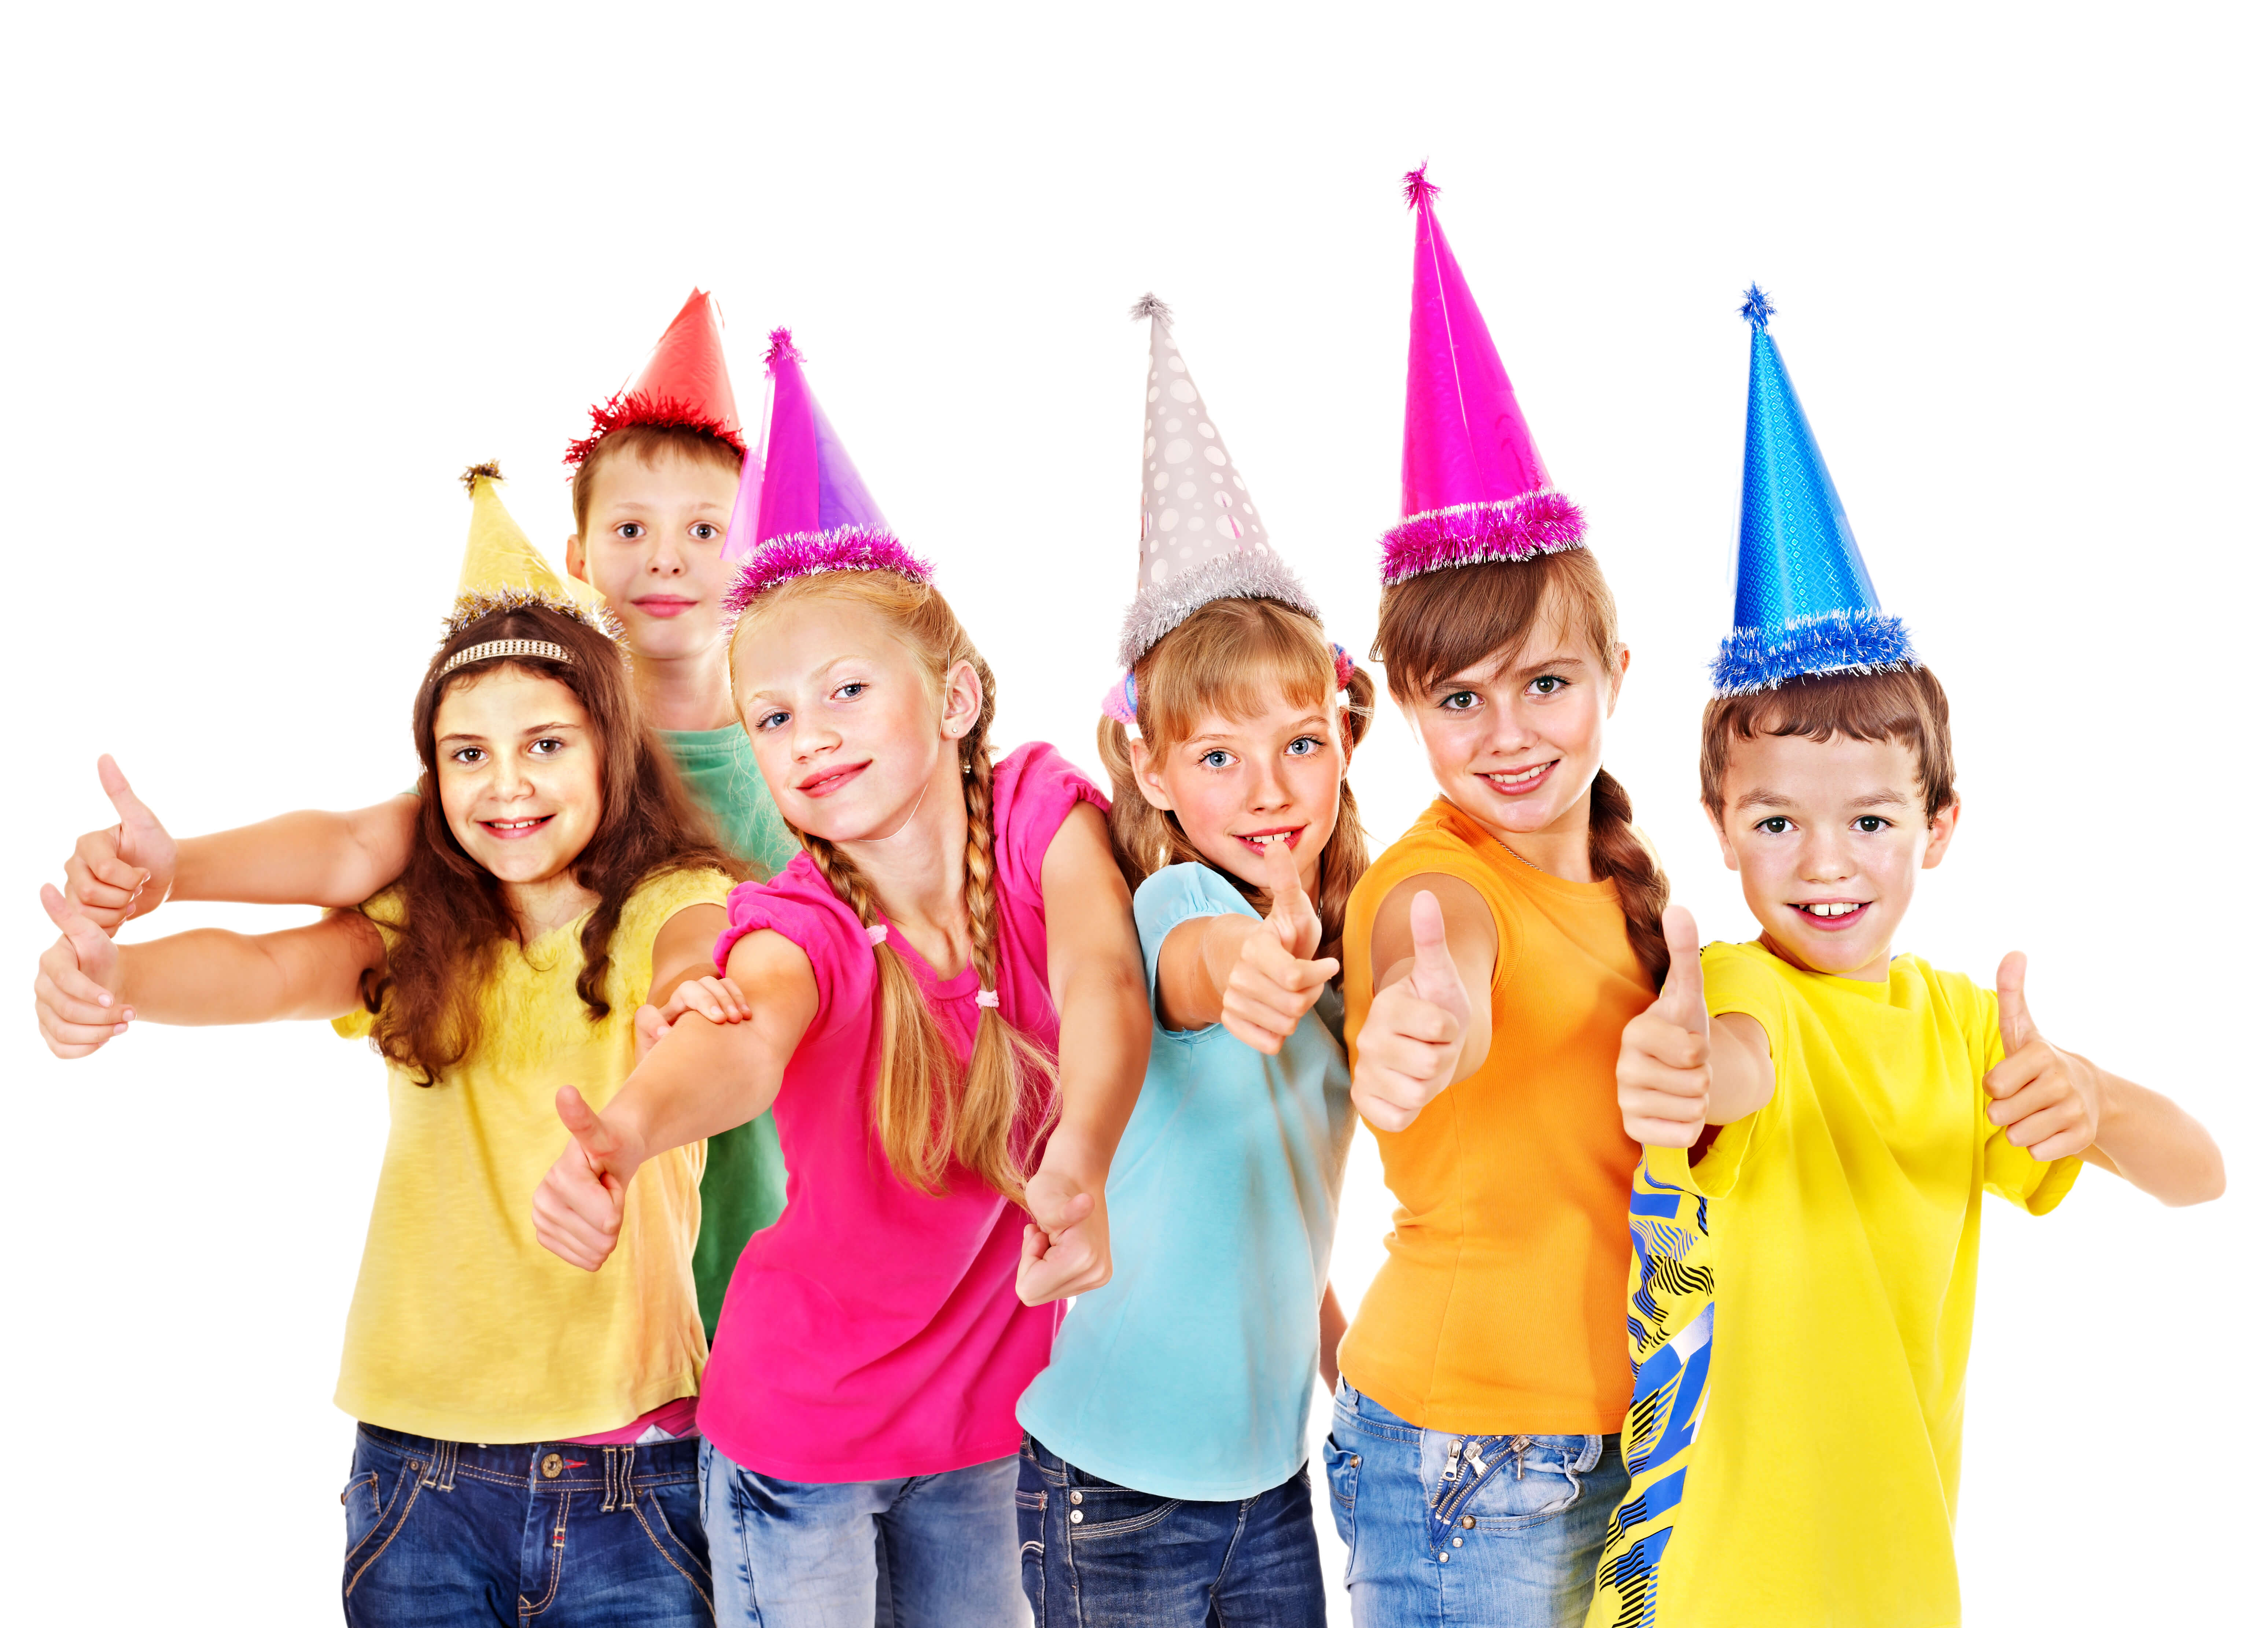 essay on birthday party for kids Free essays on my best birthday kids, breakfast essay on trees are my best friends trees are natural perennial plants commonly recognized for.